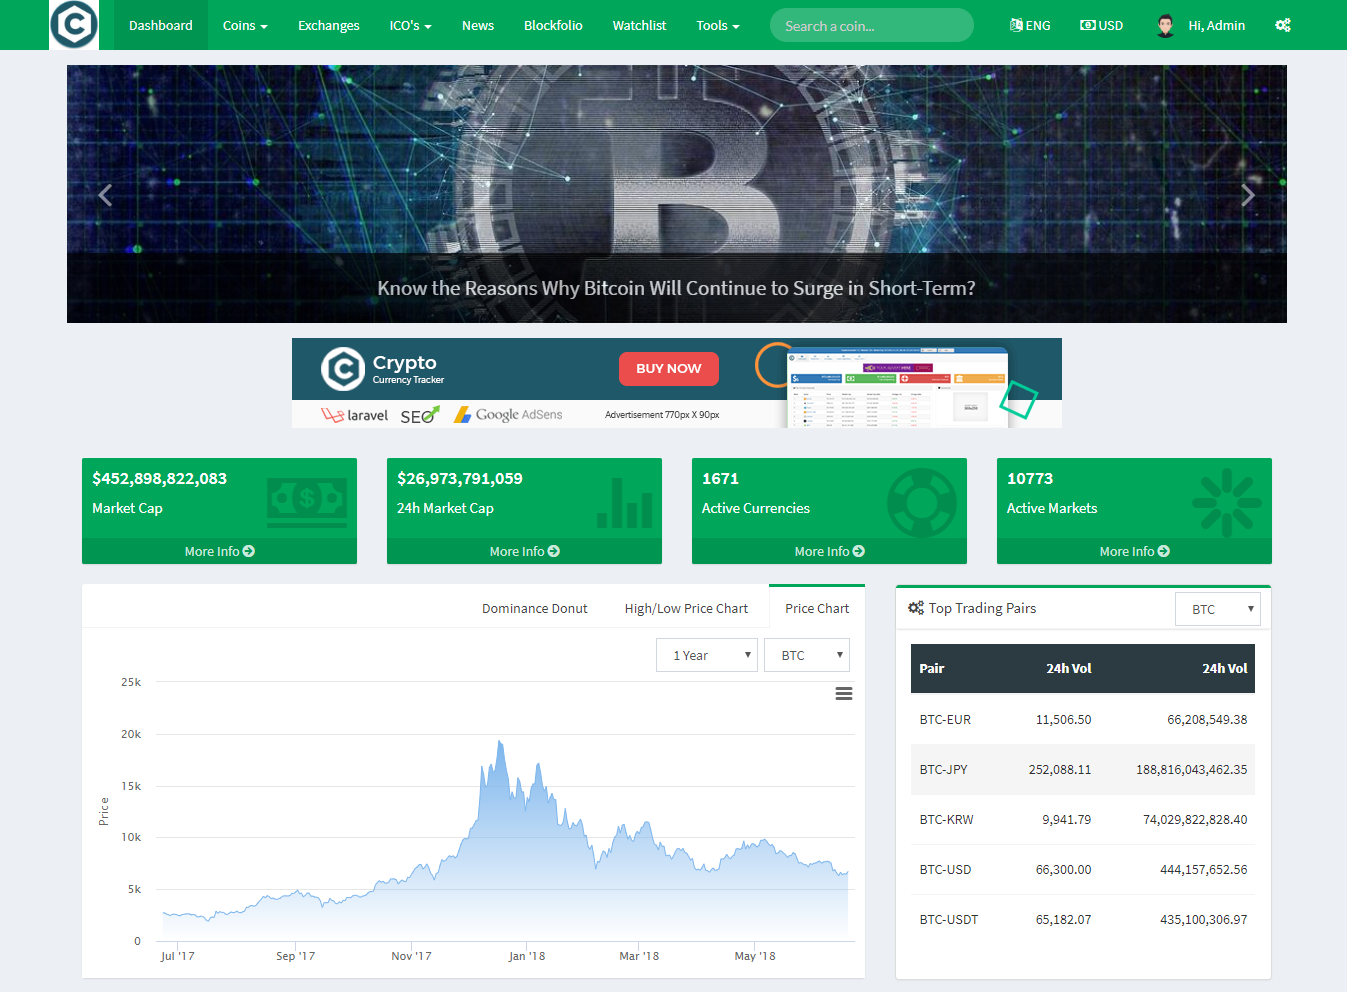 Crypto Currency Tracker v7.1 - prices, charts, news, ICO of cryptocurrencies